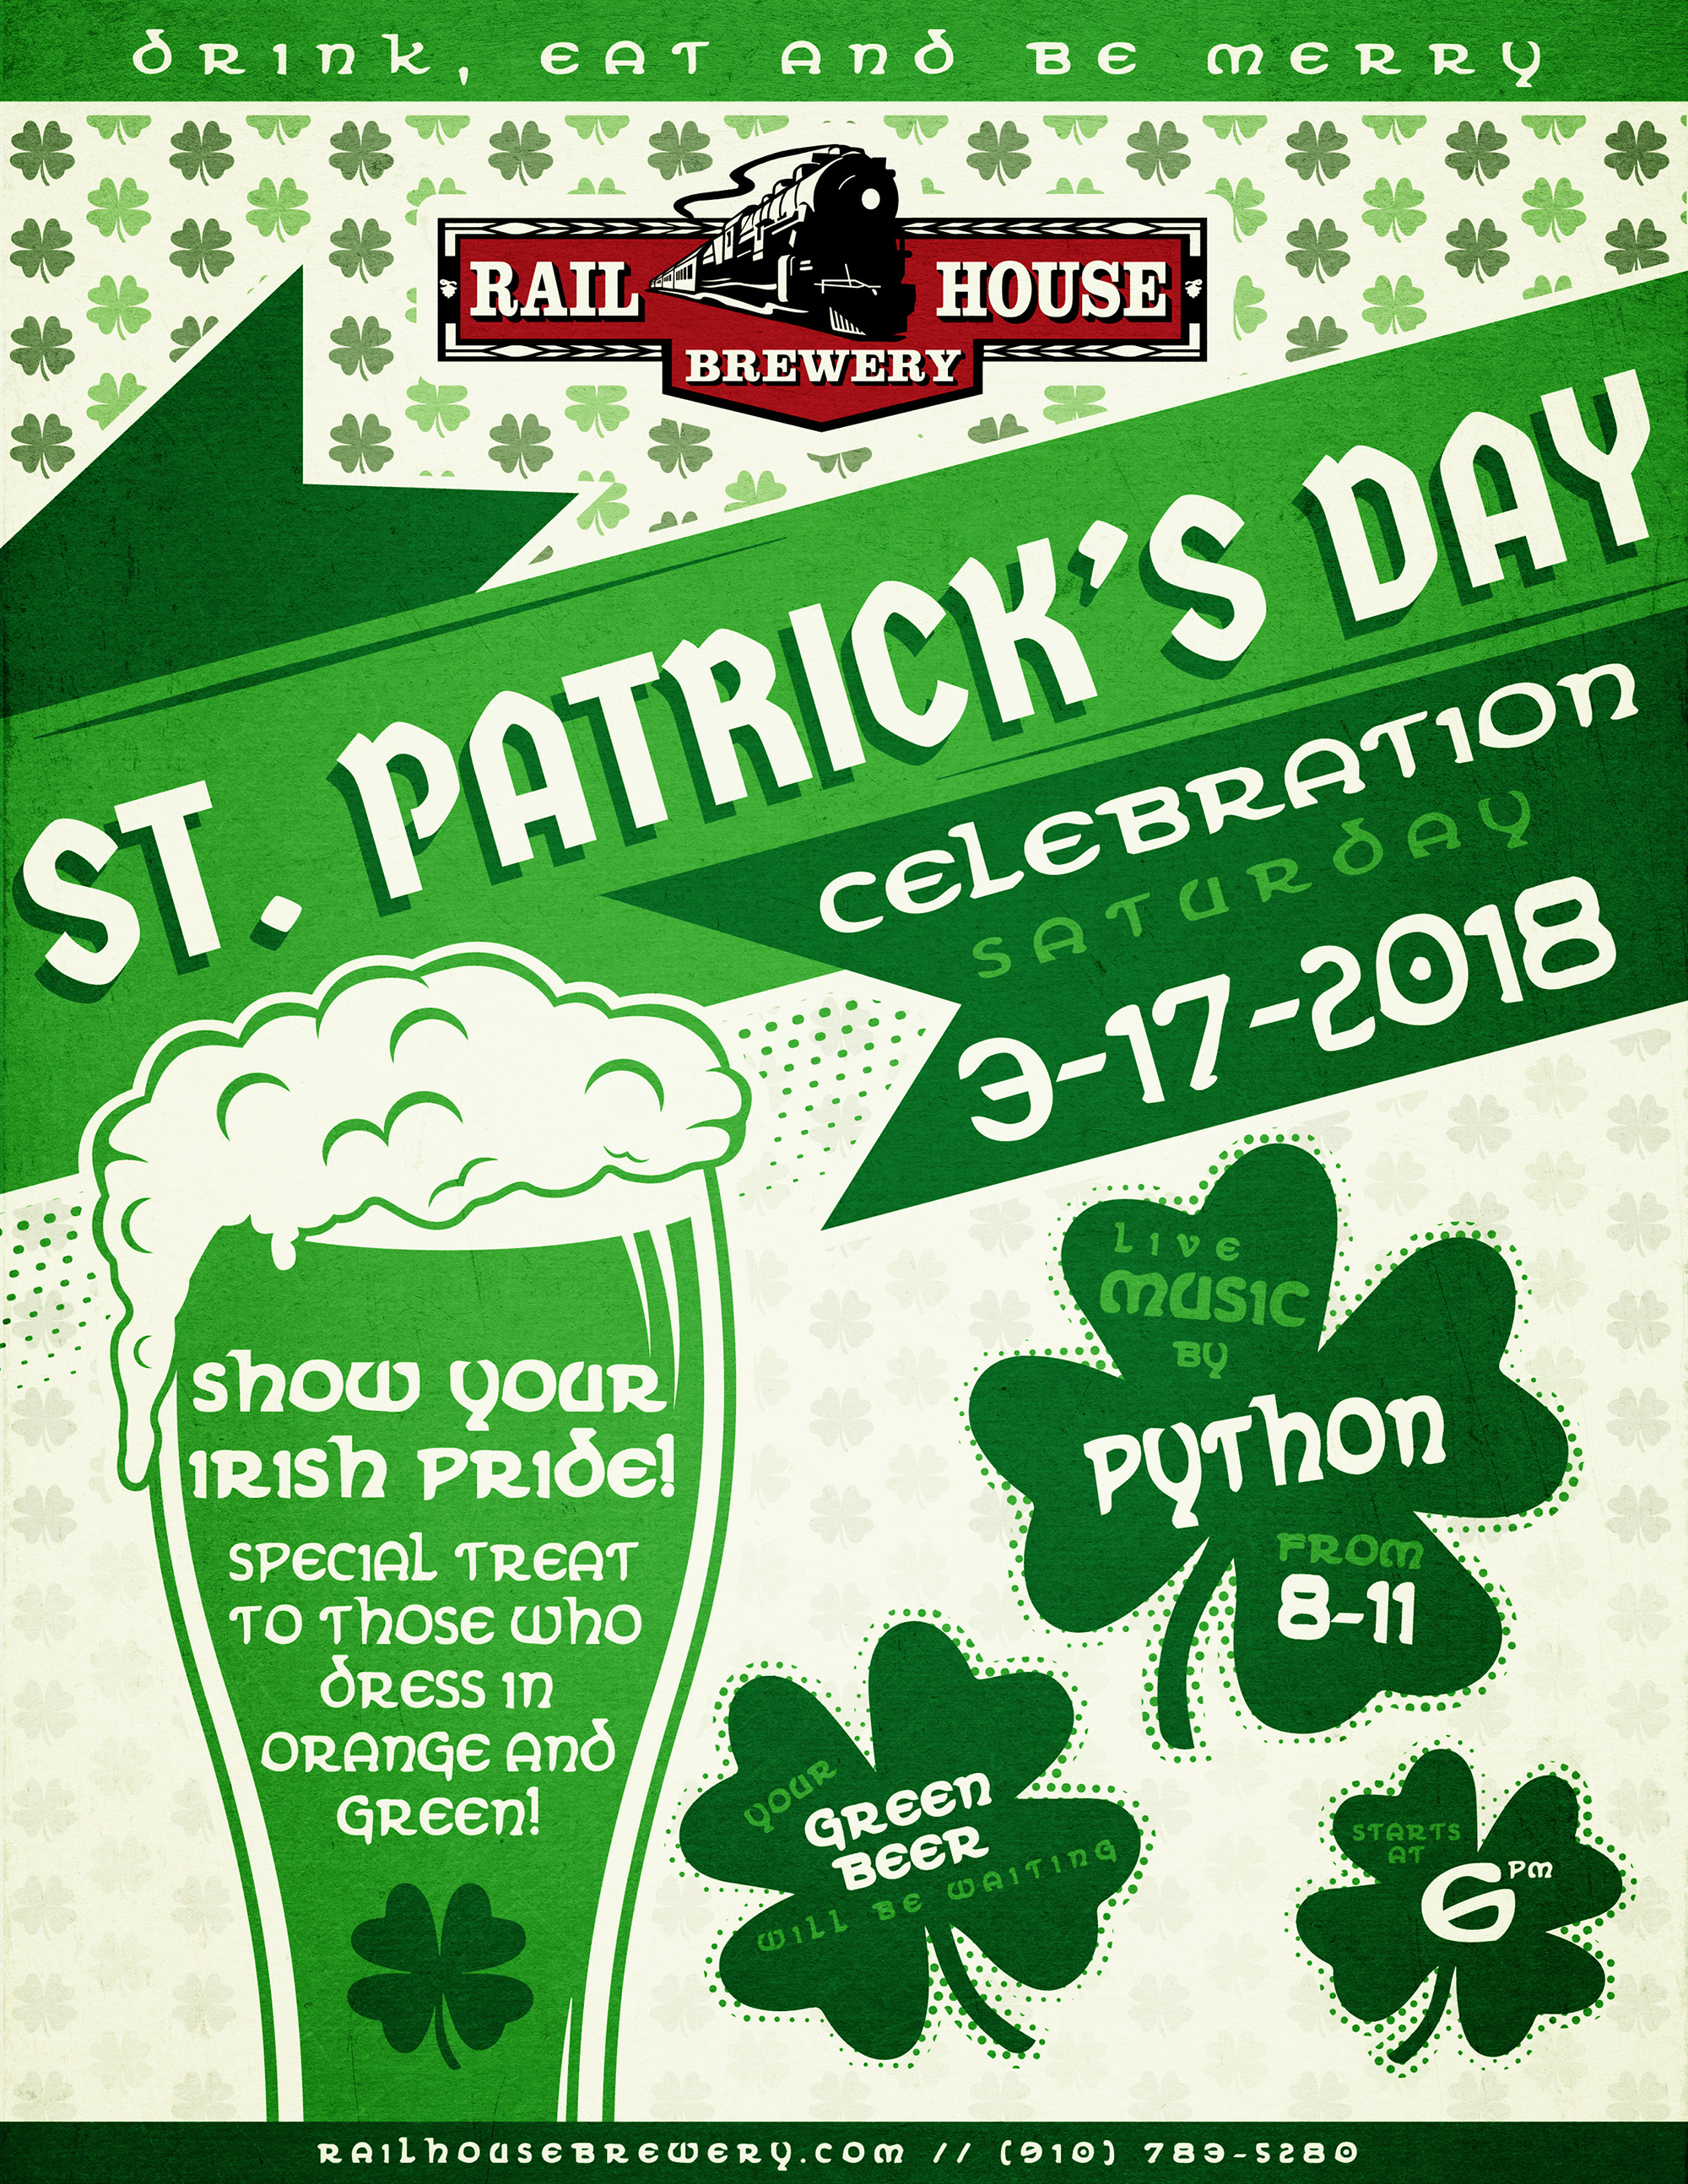 web 2018 St. Patty's Day.jpg